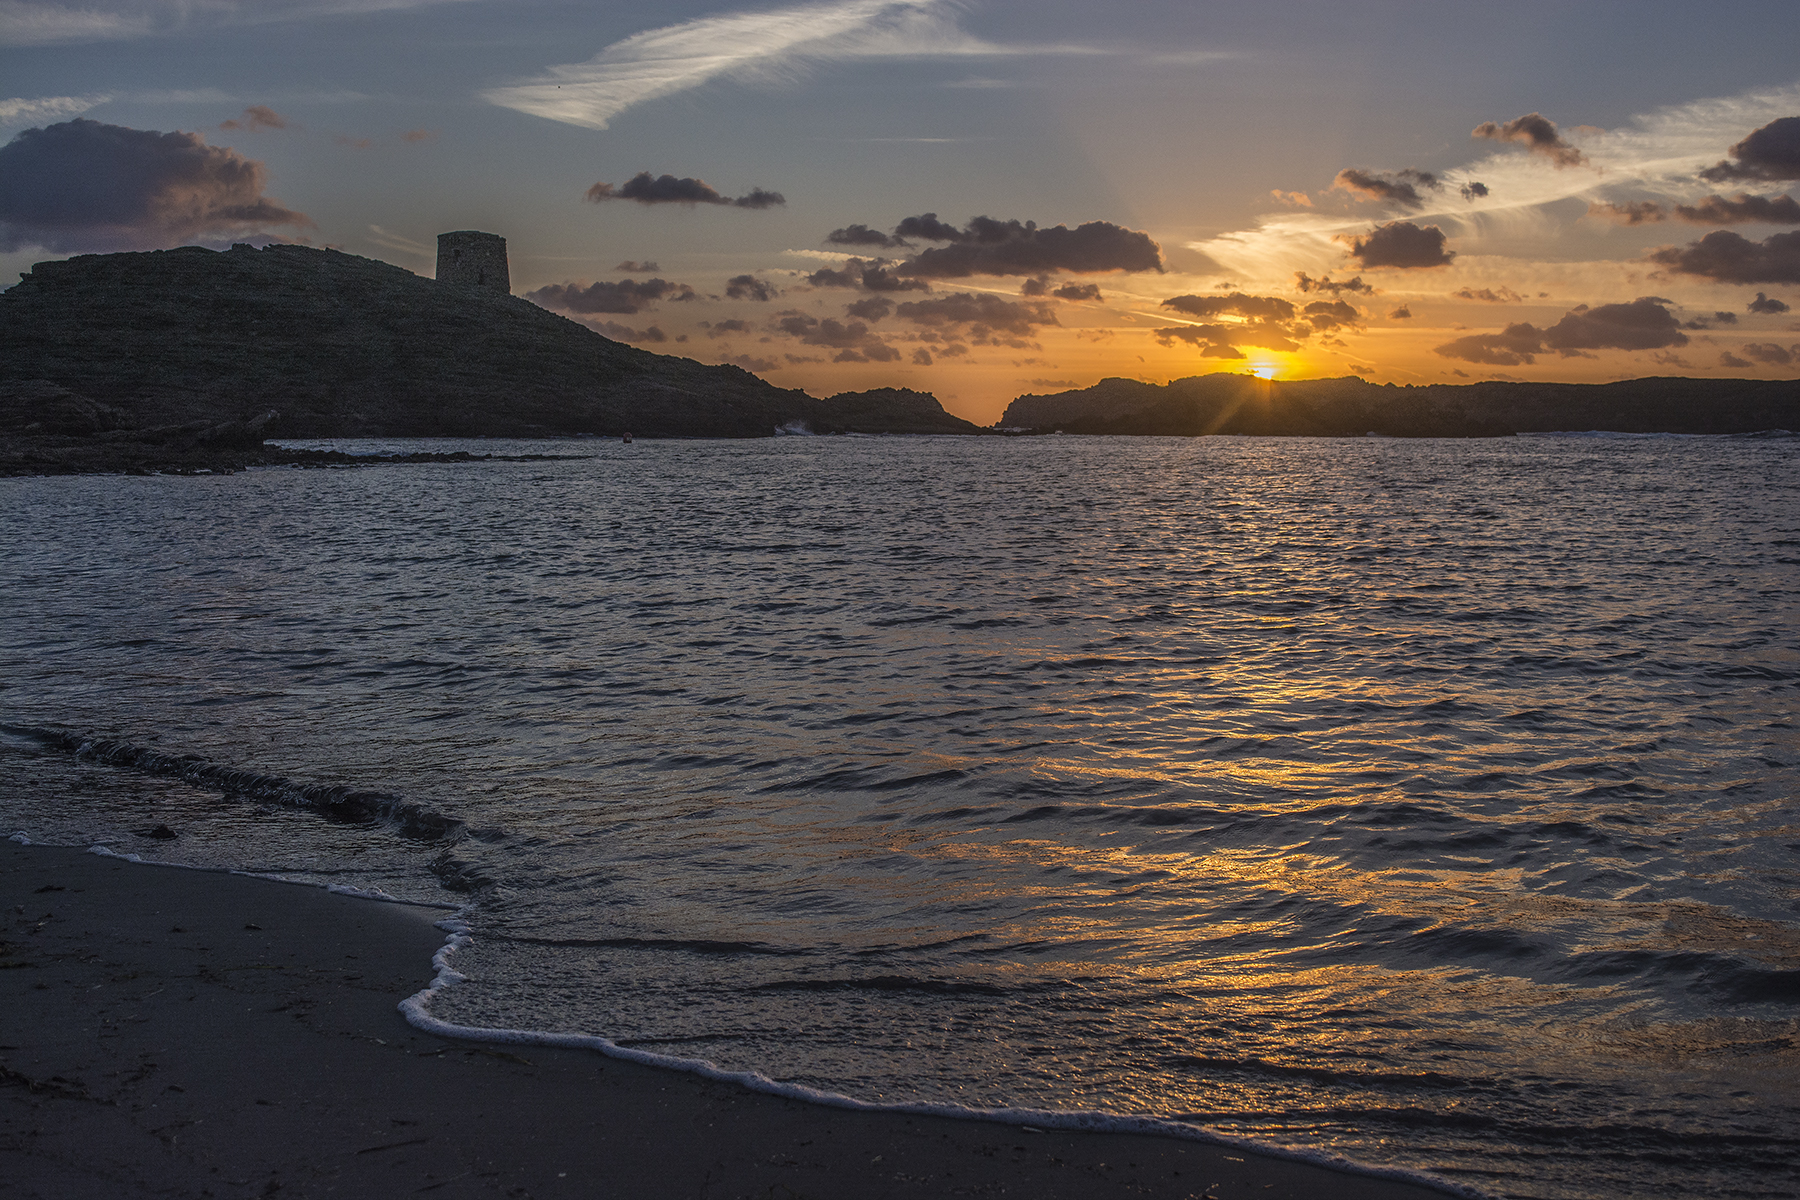 sunrise at Sa Torreta (Balearic Islands)